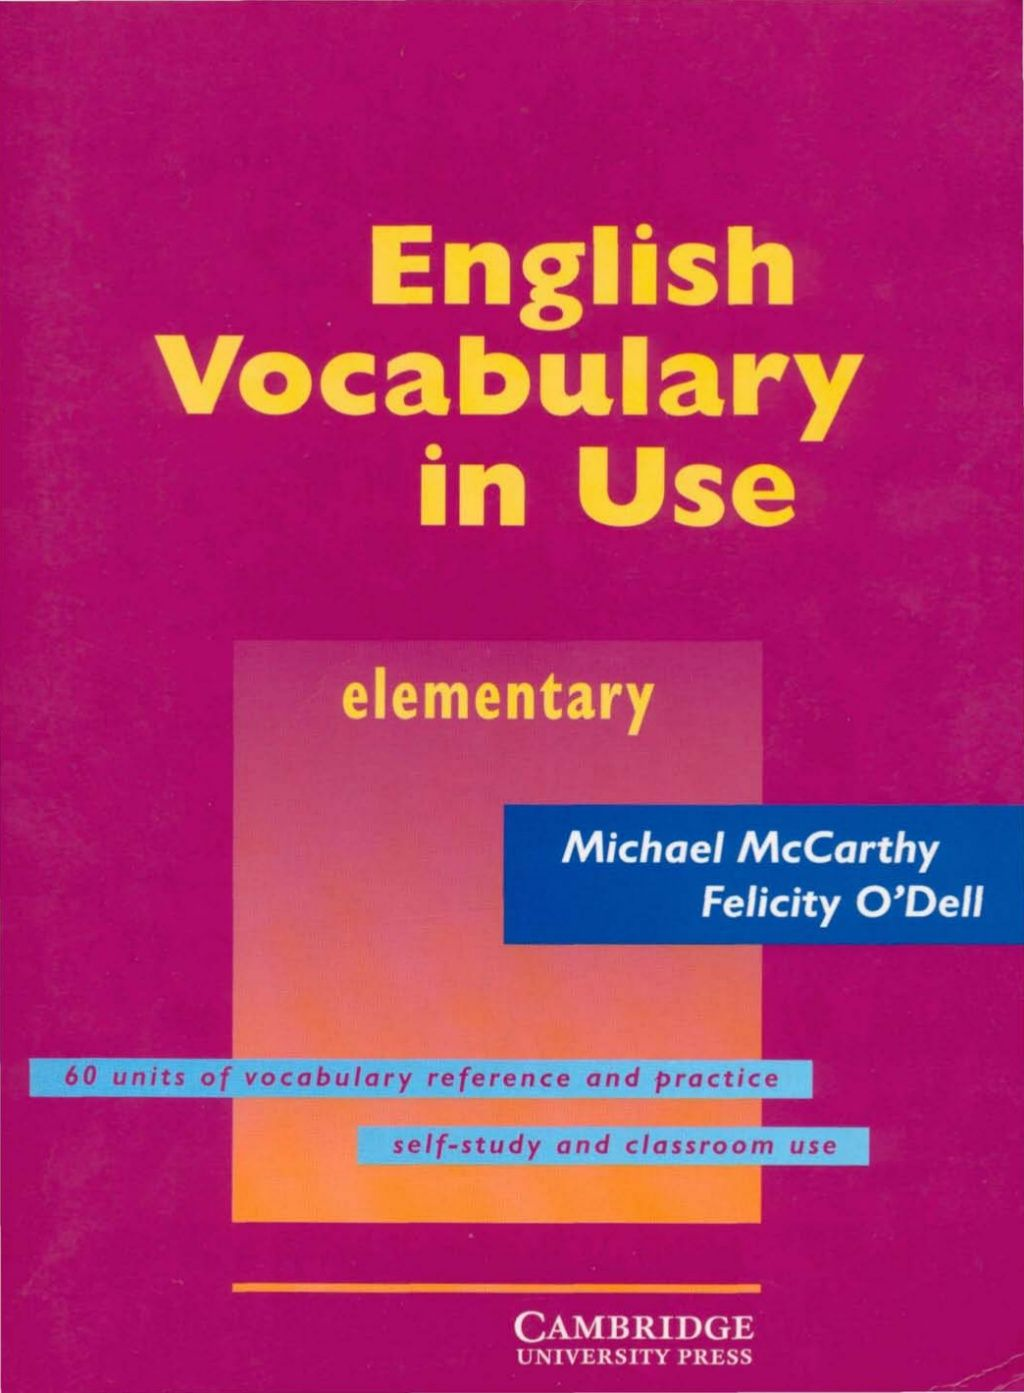 Cambridge english vocabulary in use elementary by Juan